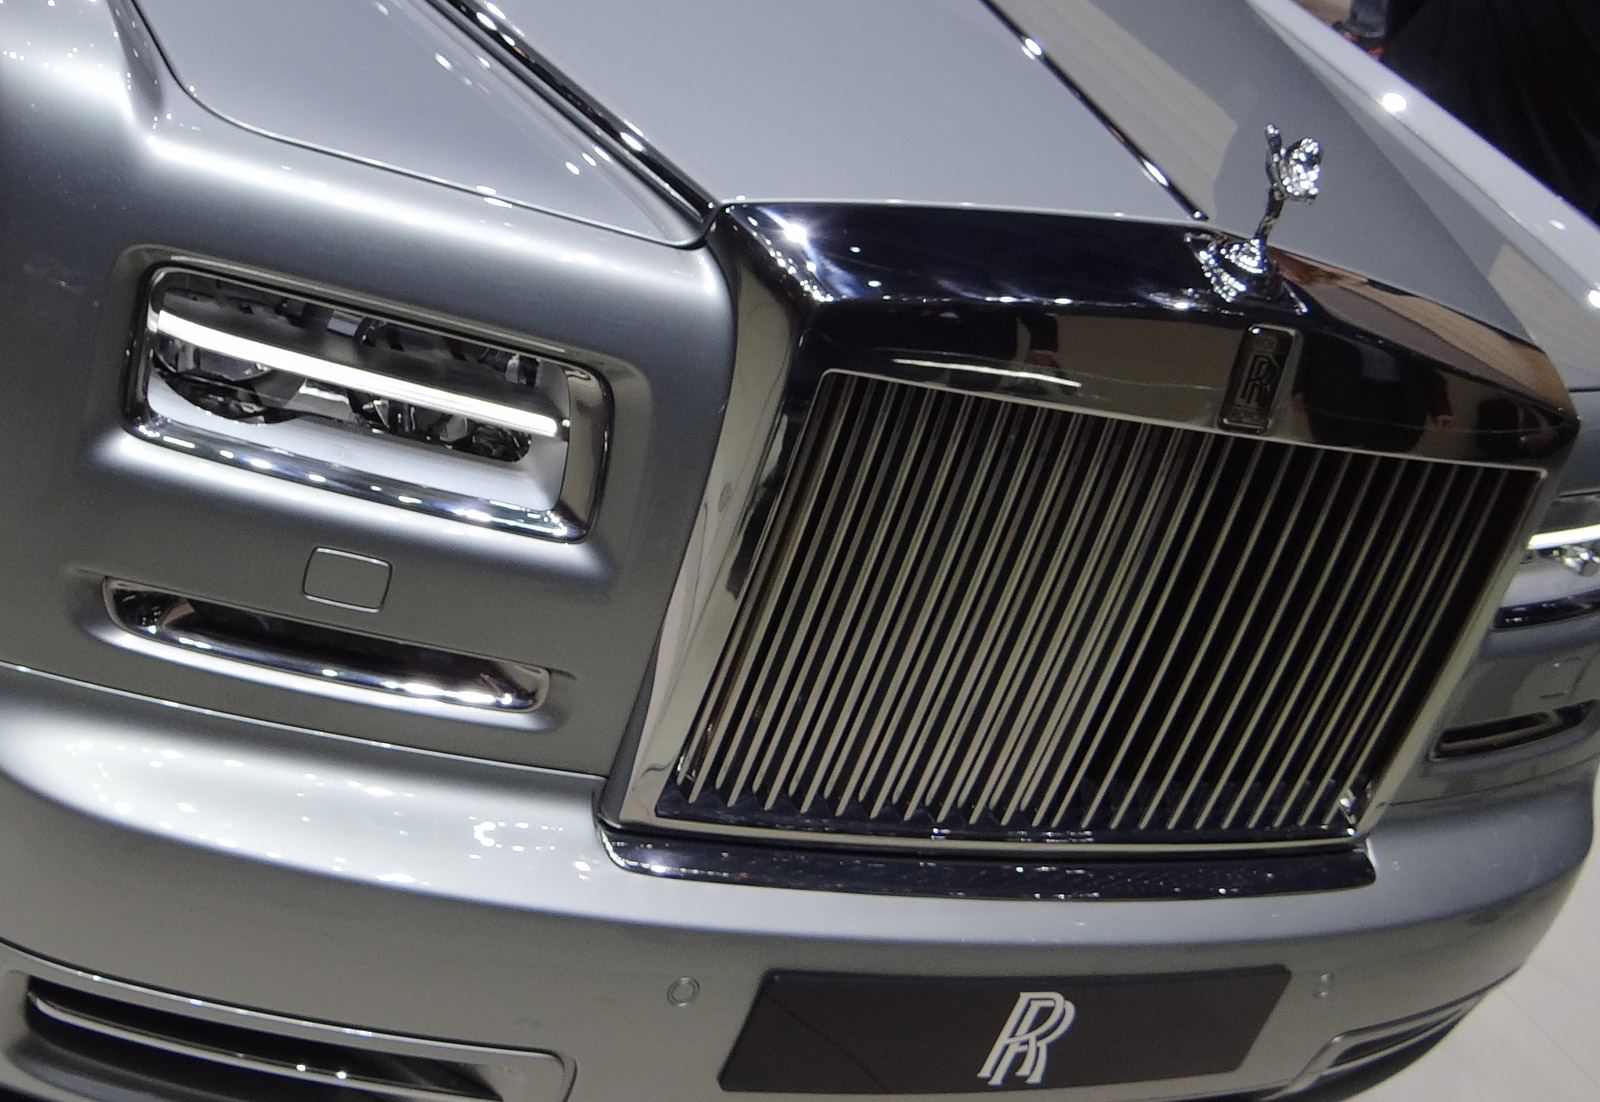 New Rolls-Royce Phantom To Debut In Three Years, Offer Plug-In Option